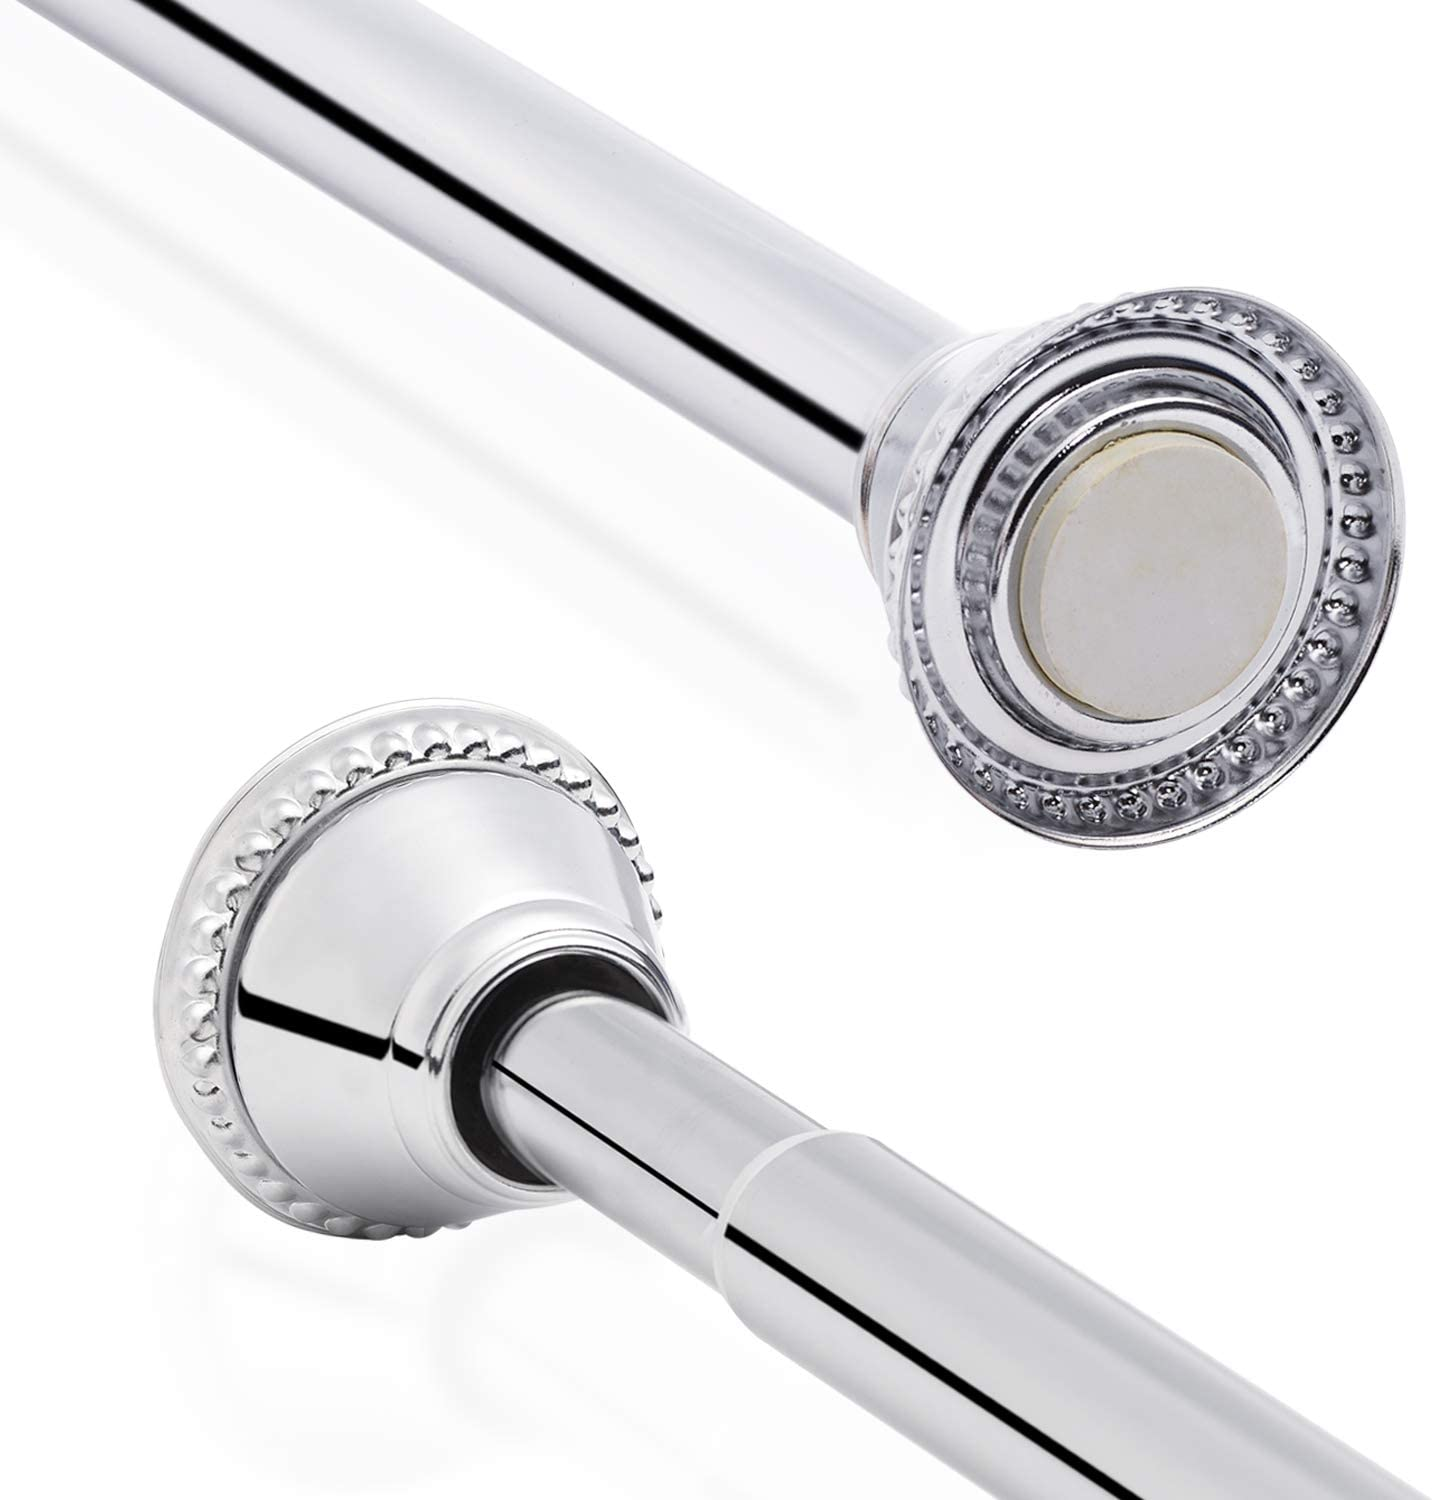 Stainless Steel Spring Tension Rod Extendable Telescopic Shower Curtain Pole No Drilling for Bath Wardrobe DIY Projects, Adjustable Length 100-190cm